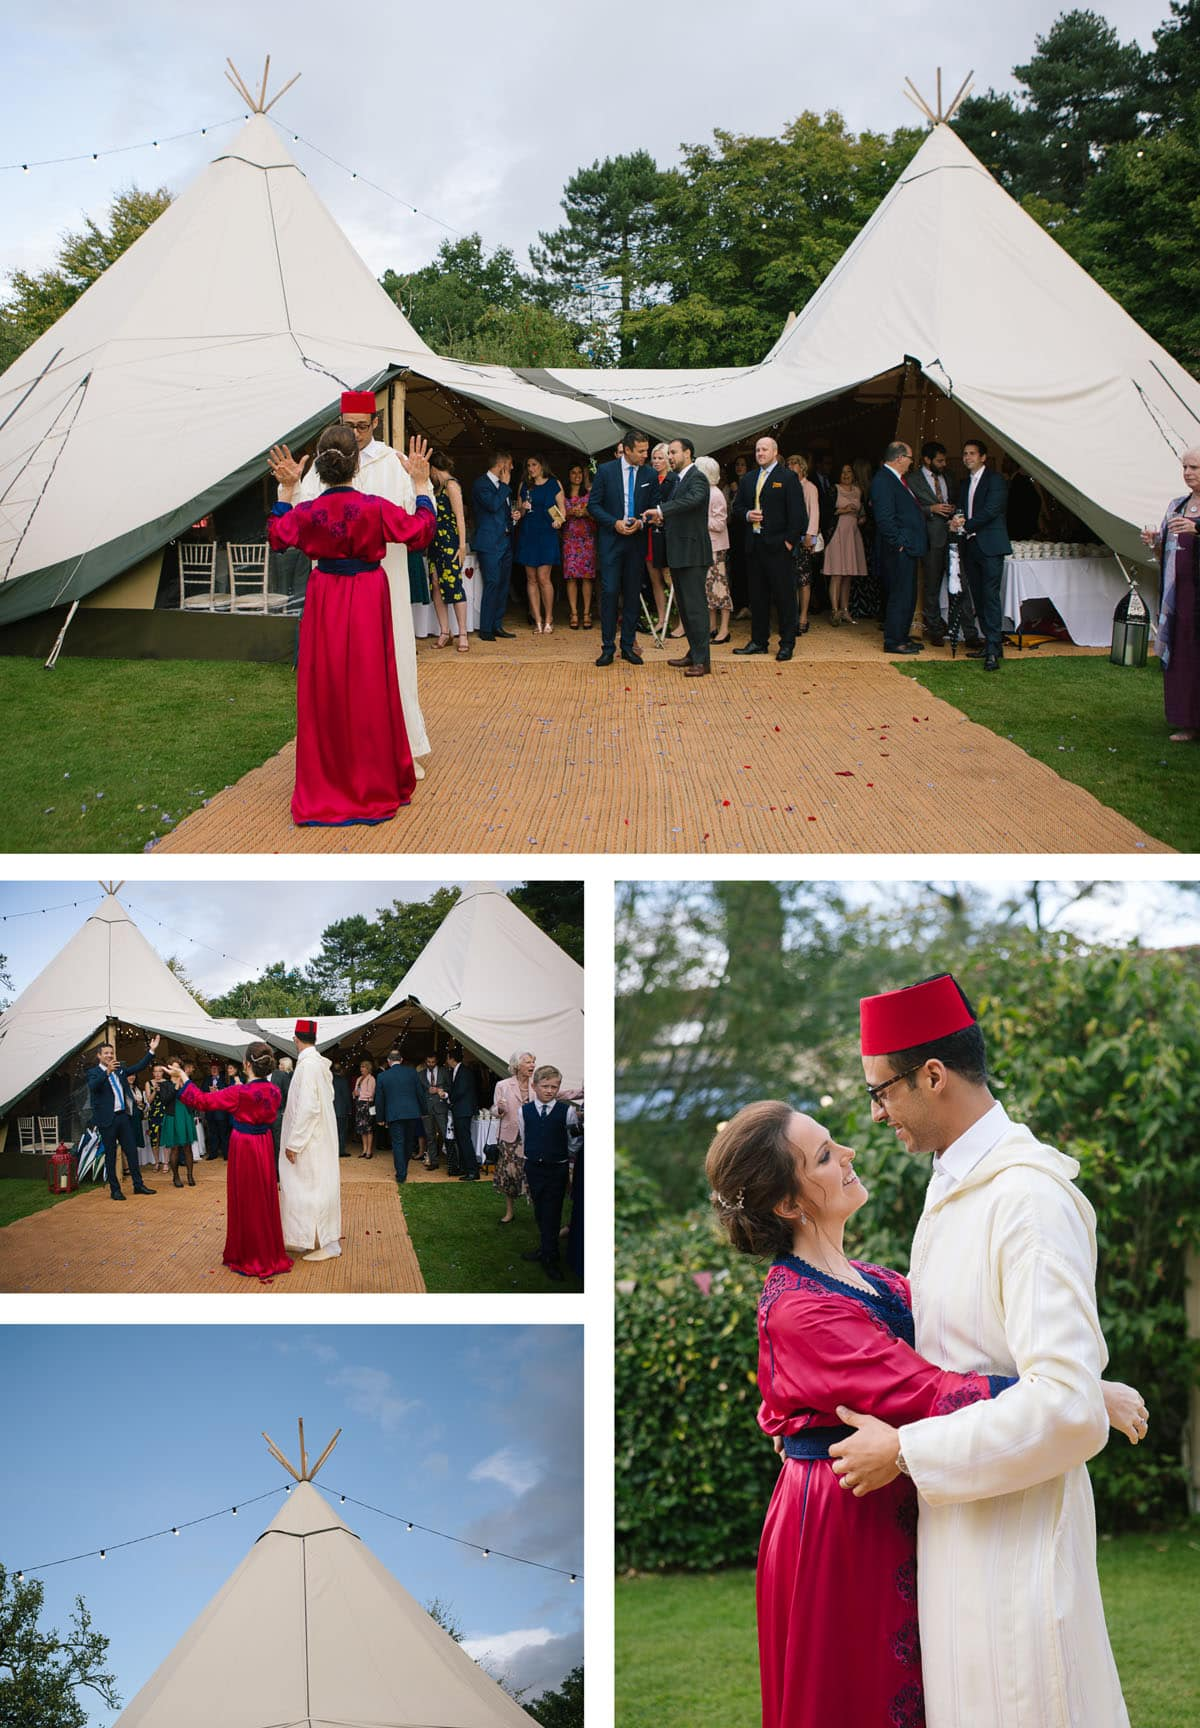 Collage of images of bride and groom dancing in traditional Moroccan dress next to wedding teepee